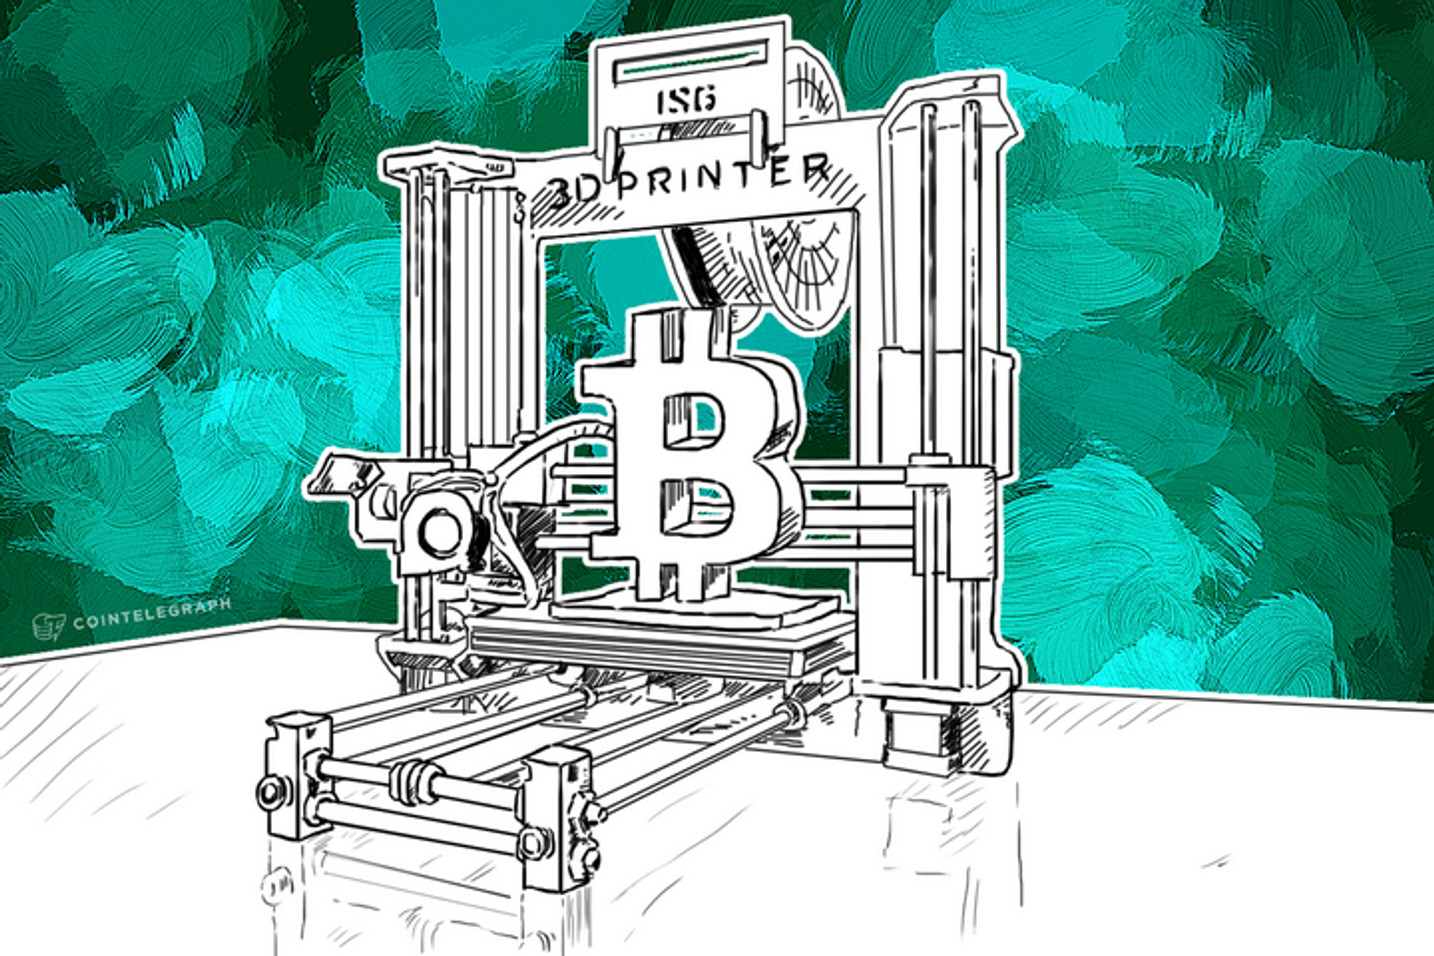 ISG Now Accepts Cryptocurrency for 3D Printers and Related Services